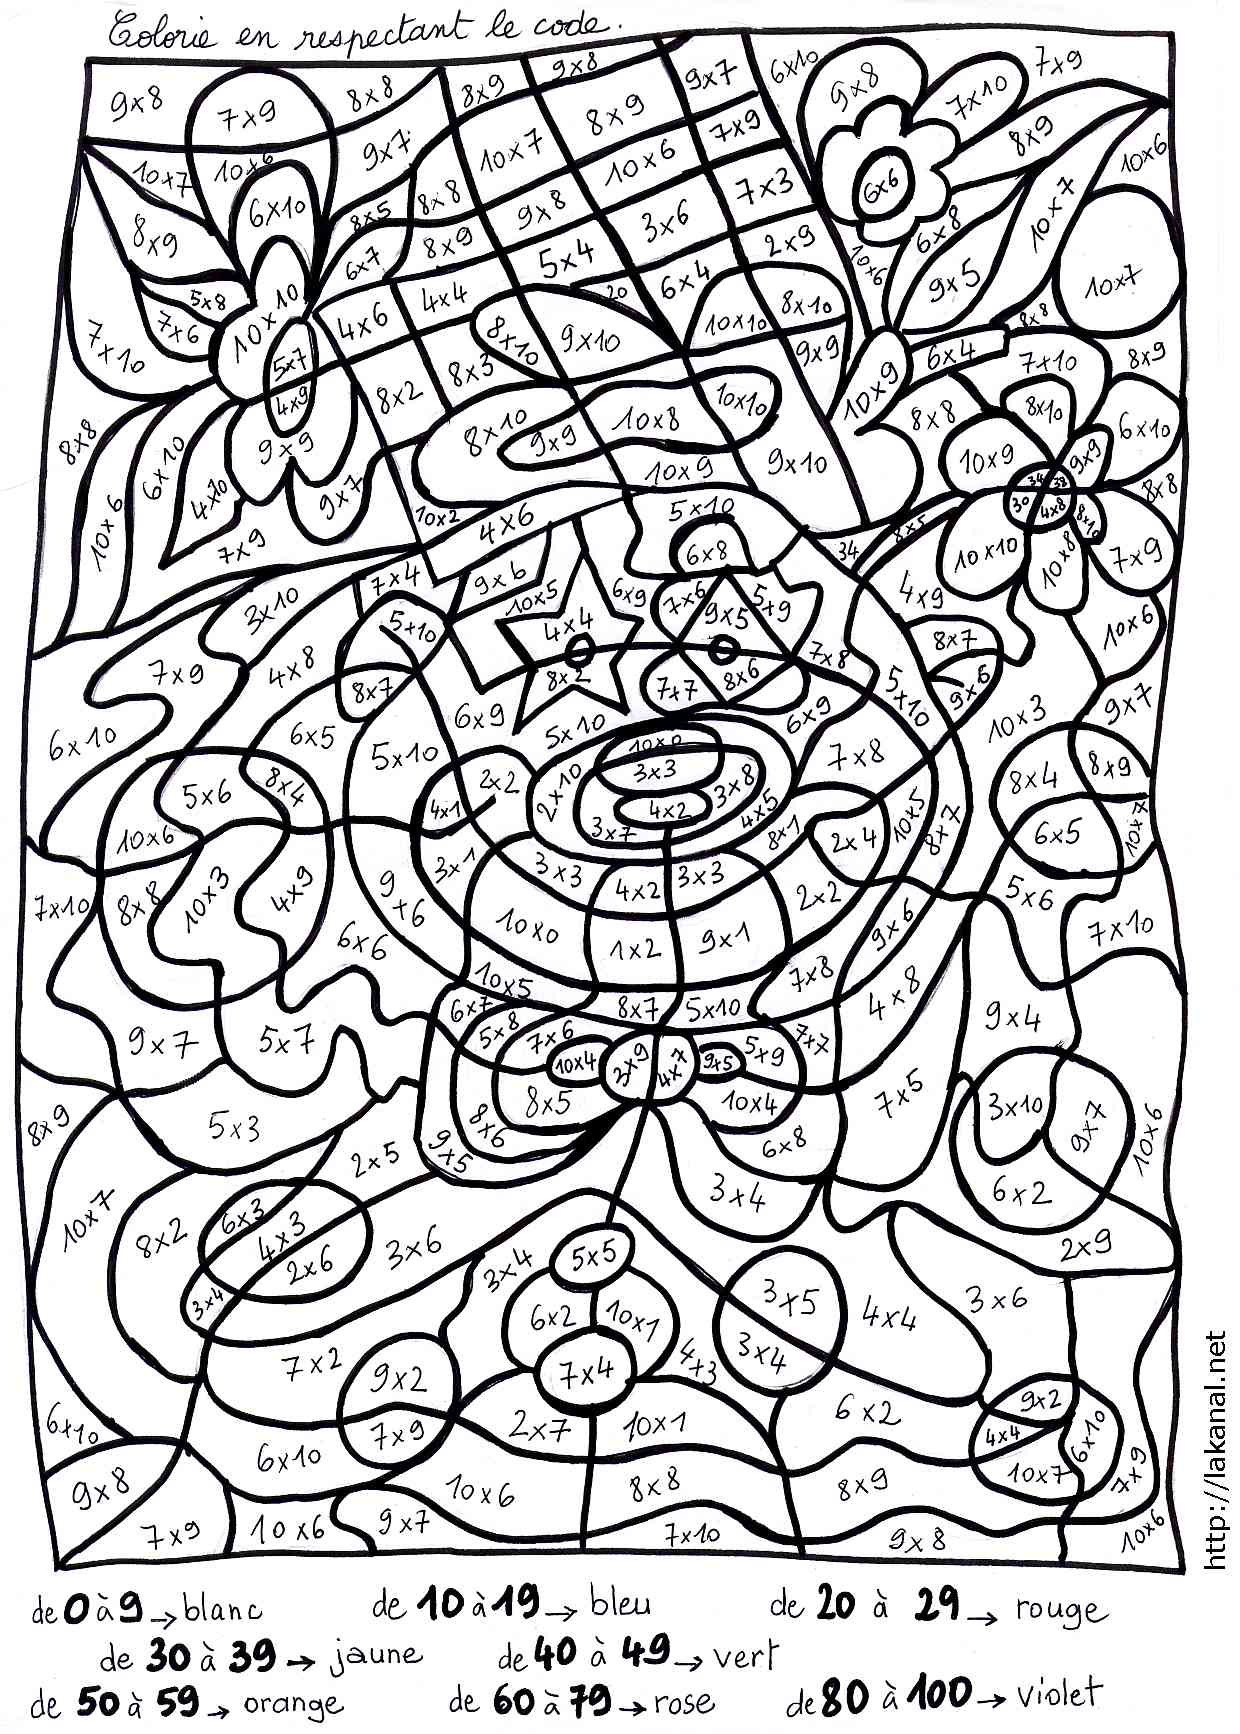 Mignonne Coloriage Magique Table De Multiplication Ce1 46 Avec supplémentaire Coloriage Pages by Coloriage Magique Table De Multiplication Ce1